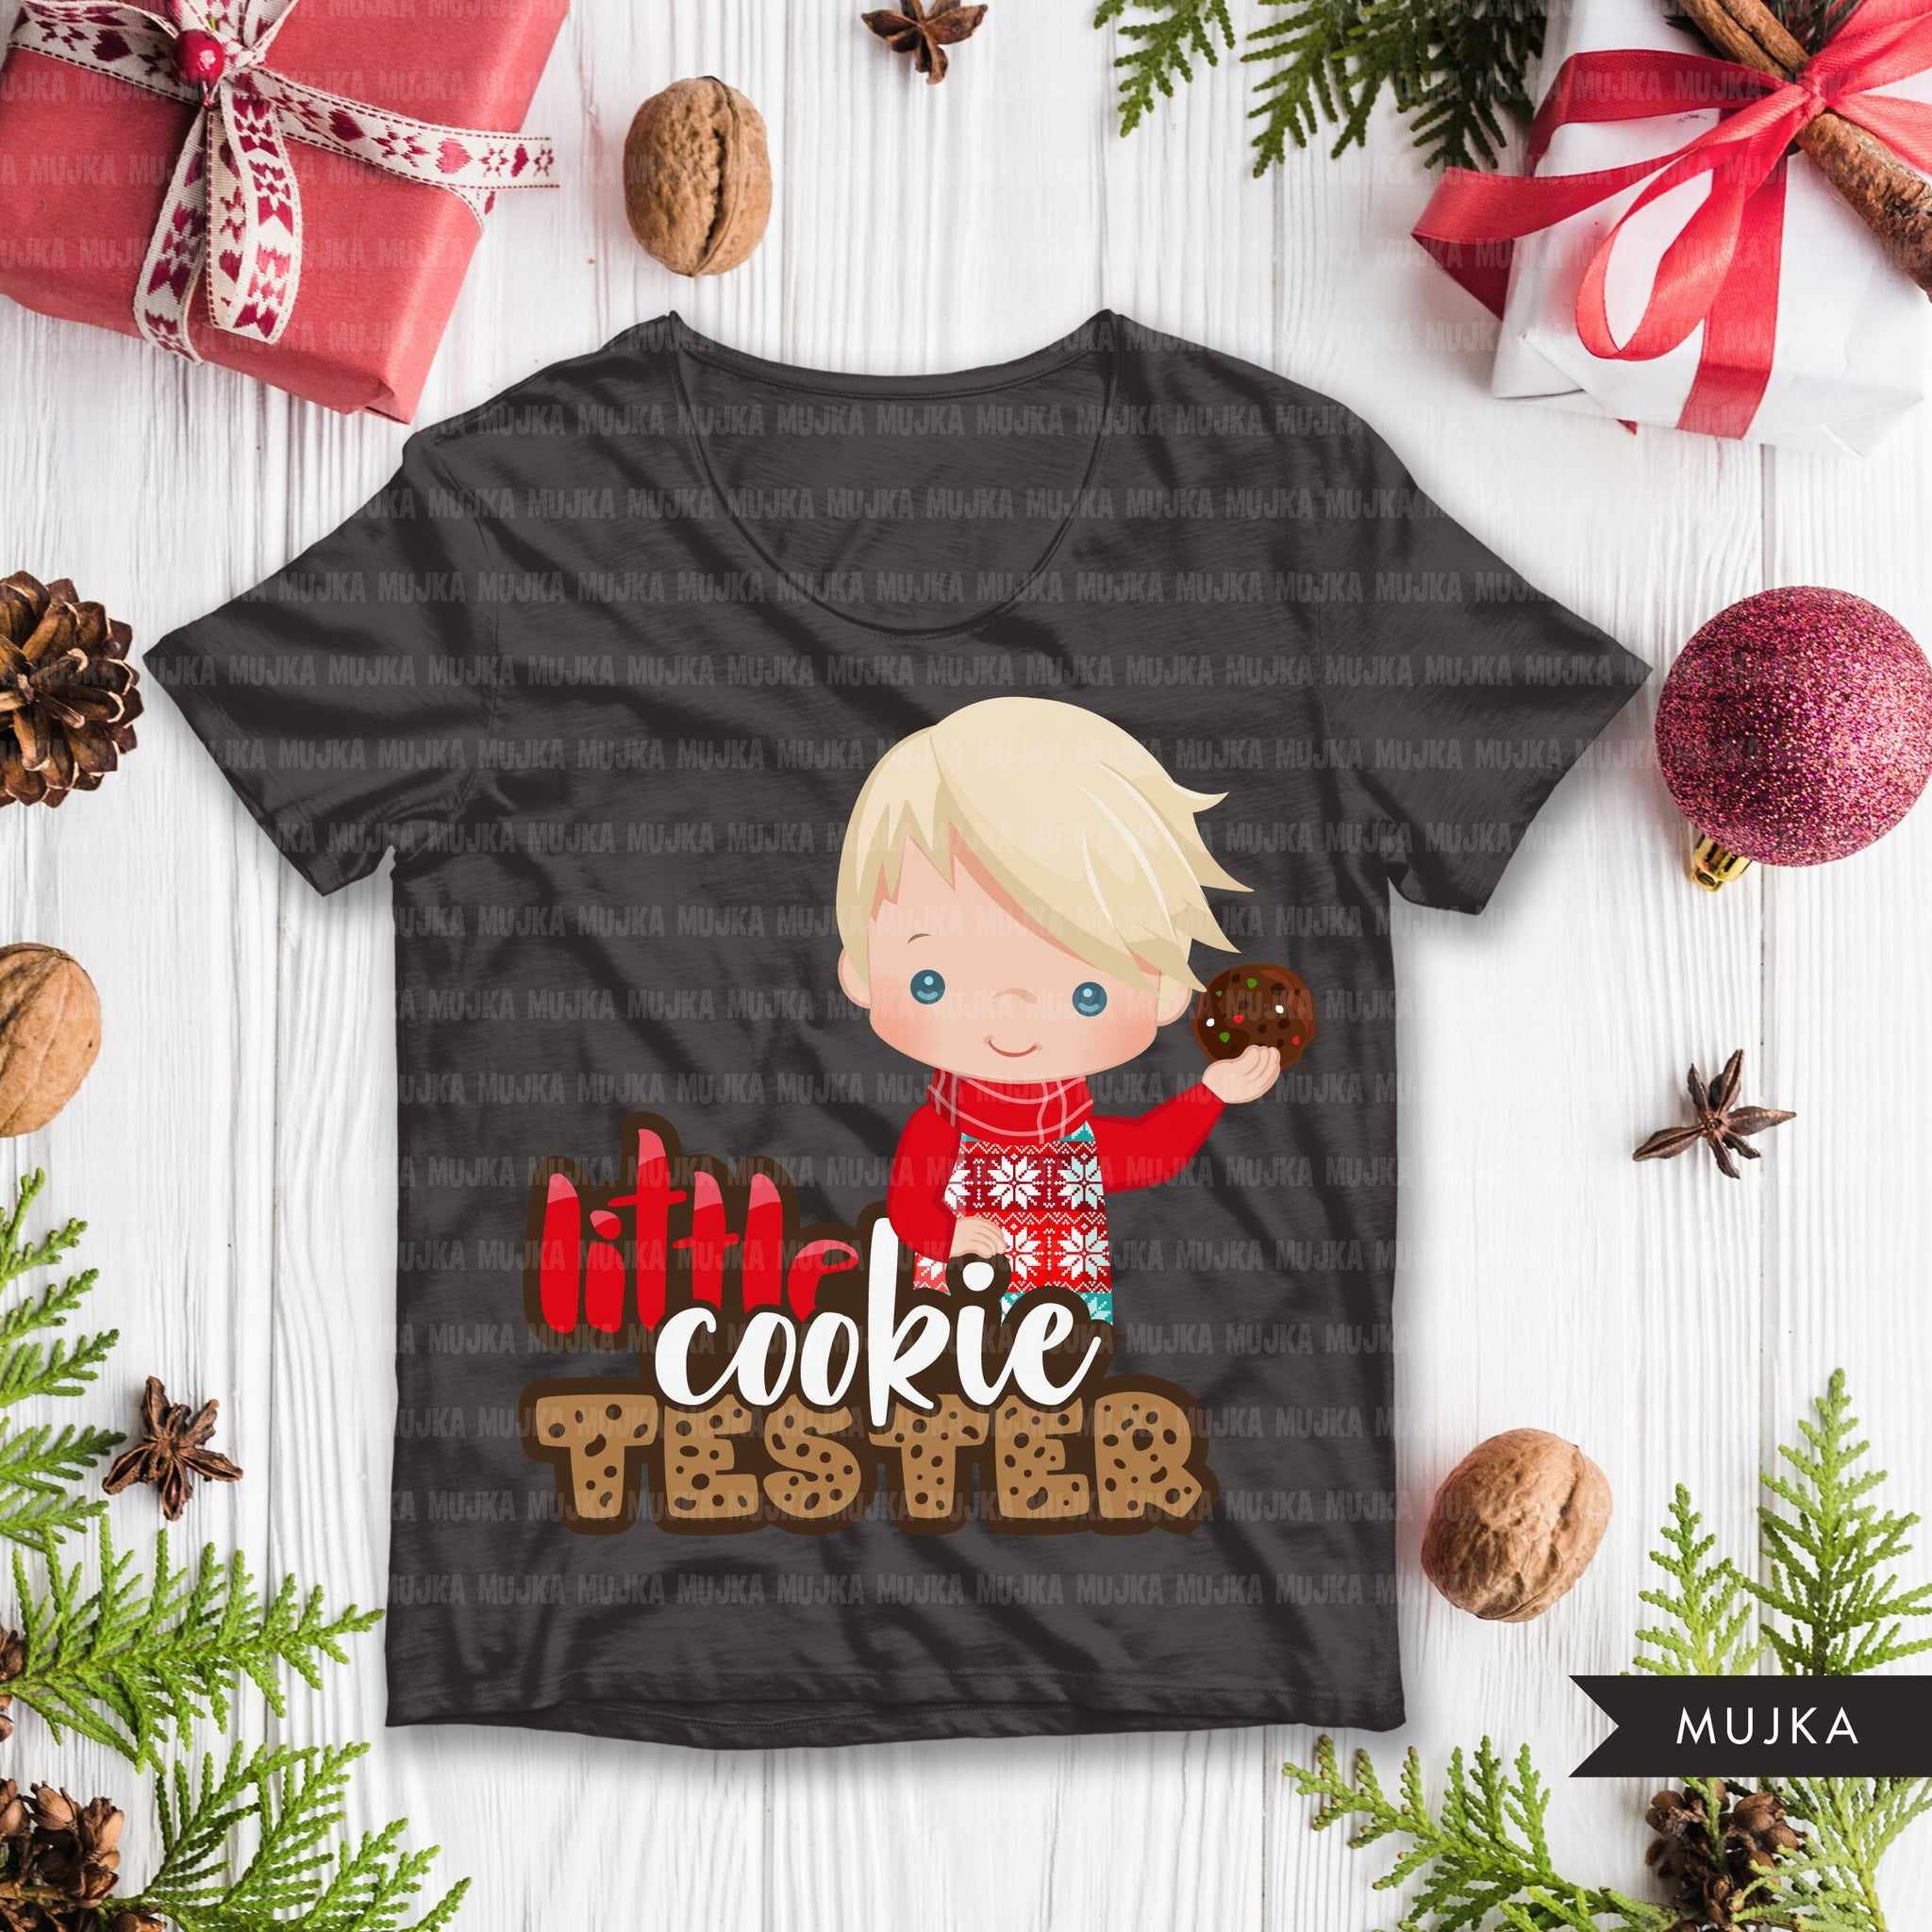 Christmas PNG digital, Little cookie Tester Printable HTV sublimation image transfer clipart, t-shirt boy graphics